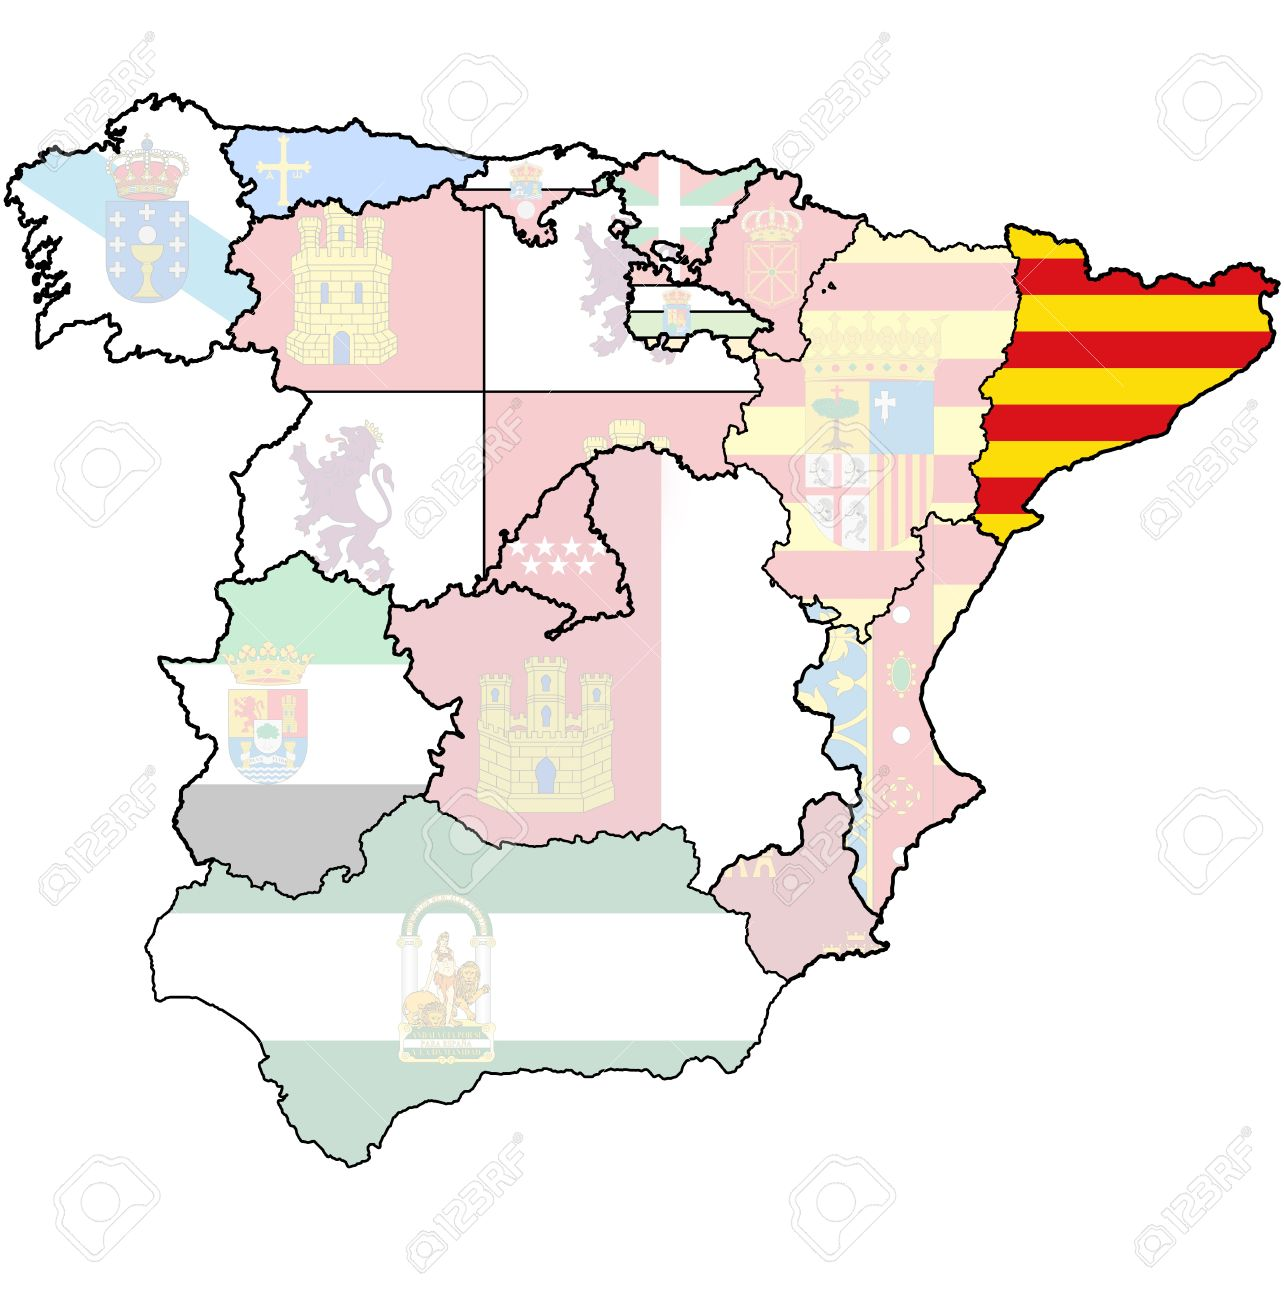 Catalonia Region On Administration Map Of Regions Of Spain With